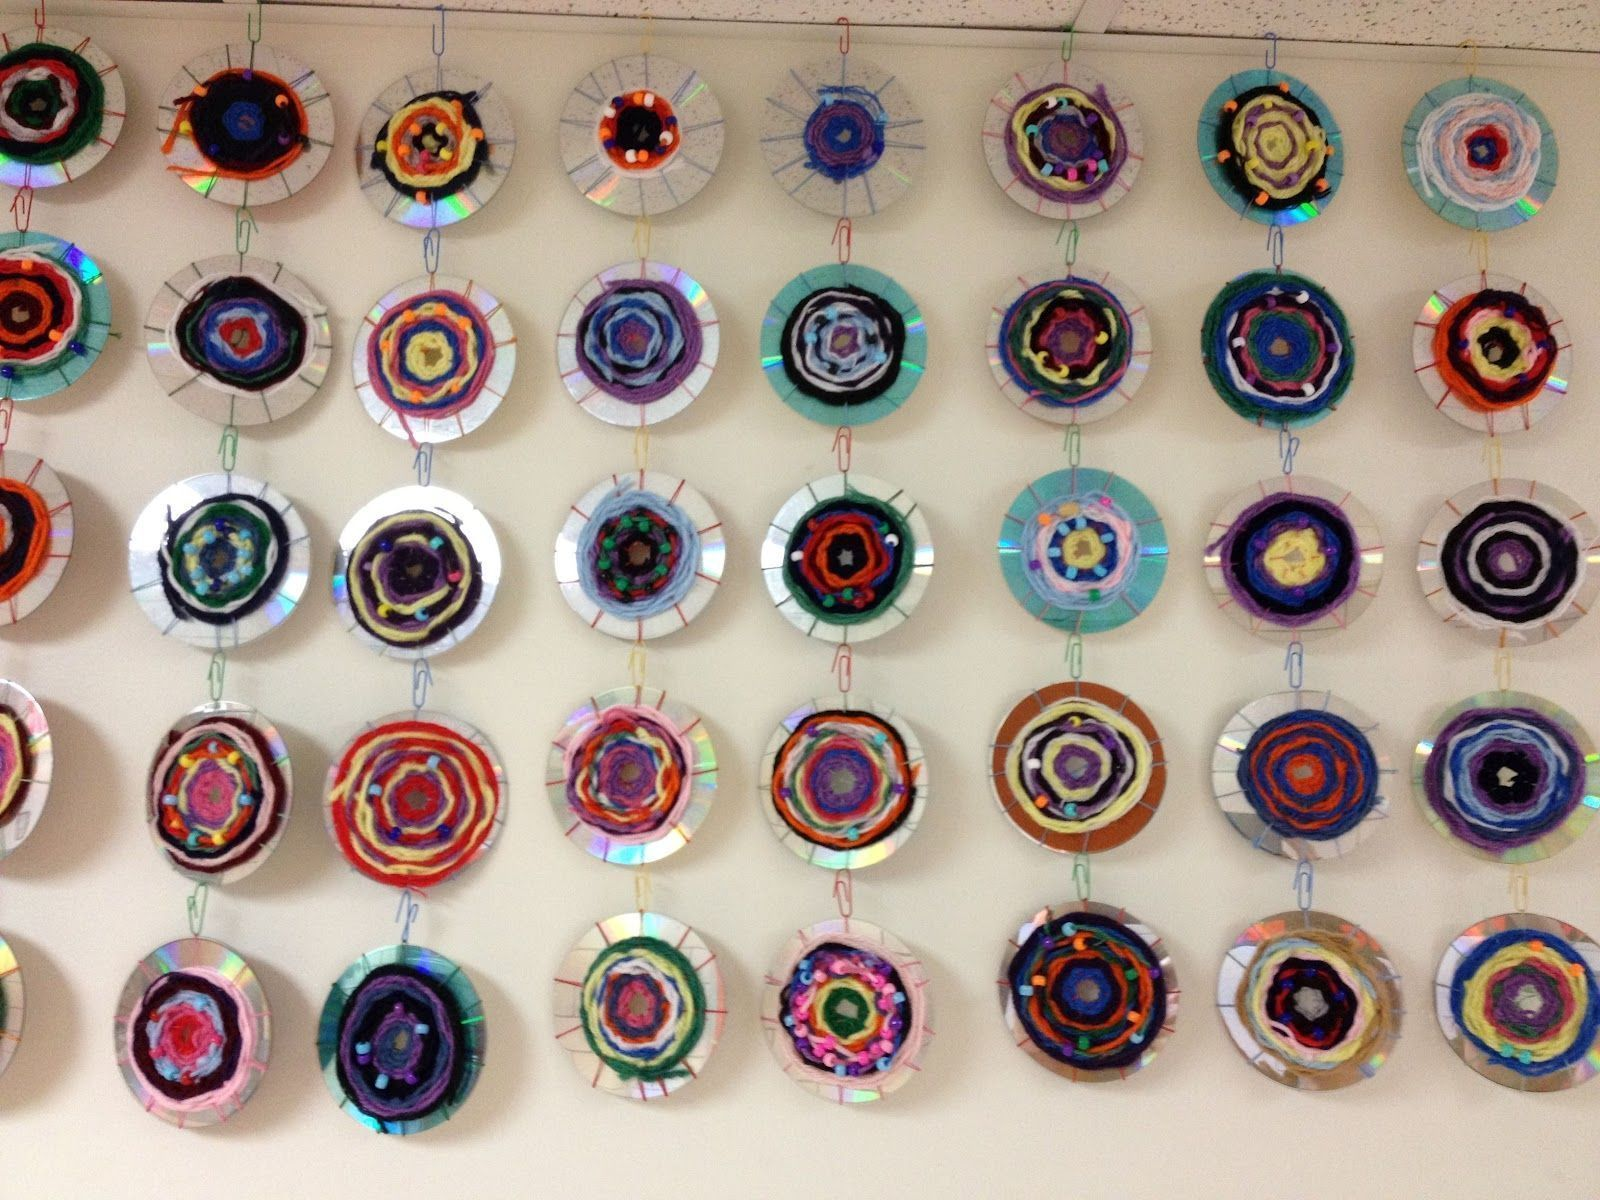 Splats, Scraps and Glue Blobs: Recycled CD Weavings #recycledcd Splats, Scraps and Glue Blobs: Recycled CD Weavings #recycledcd Splats, Scraps and Glue Blobs: Recycled CD Weavings #recycledcd Splats, Scraps and Glue Blobs: Recycled CD Weavings #recycledcd Splats, Scraps and Glue Blobs: Recycled CD Weavings #recycledcd Splats, Scraps and Glue Blobs: Recycled CD Weavings #recycledcd Splats, Scraps and Glue Blobs: Recycled CD Weavings #recycledcd Splats, Scraps and Glue Blobs: Recycled CD Weavings #recycledcd